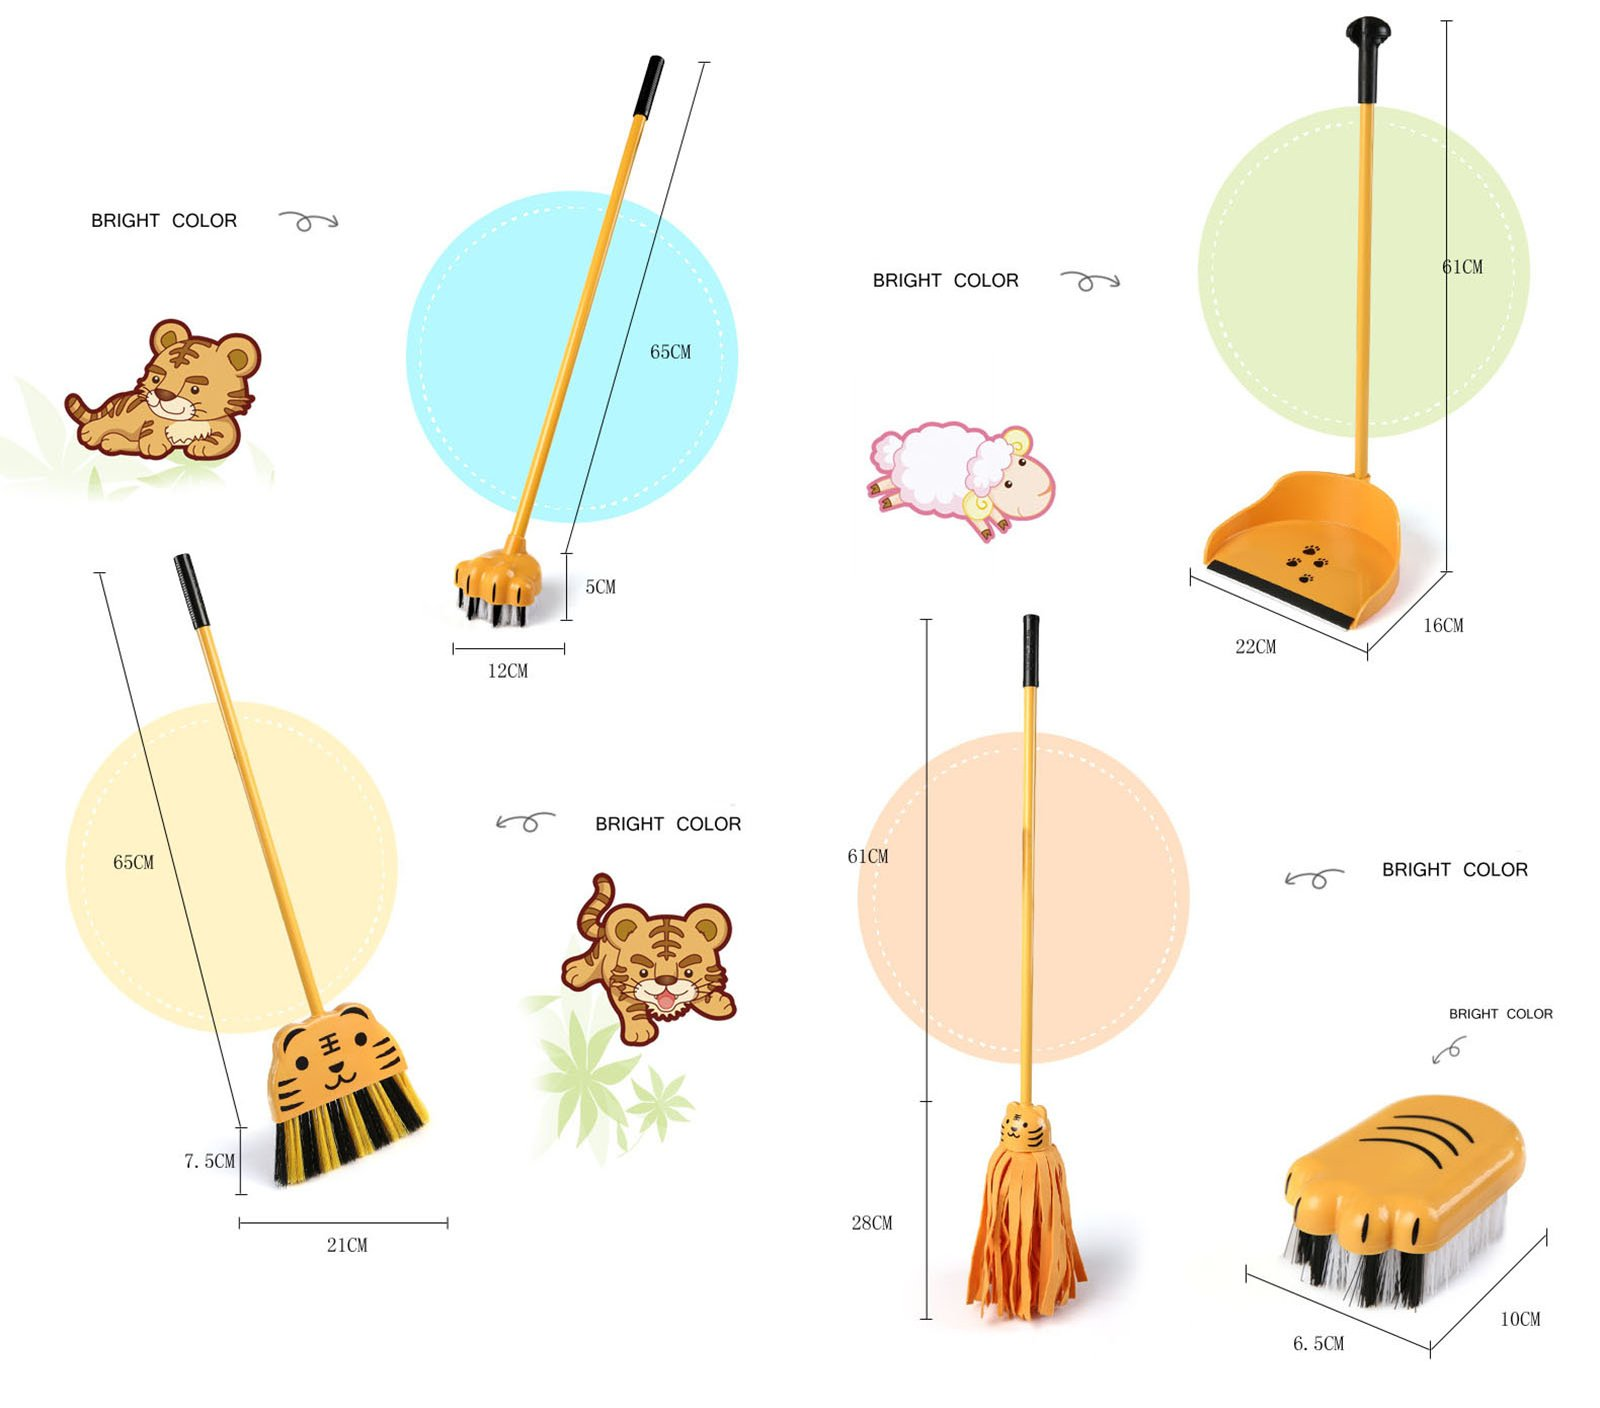 Aboo 5 Pieces Removable Cute Cleaning Tool Set Mop Dustpan Broom Brush and Long Handle Brush Animal Pattern for Children Classroom Home (Brown) by Aboo (Image #2)